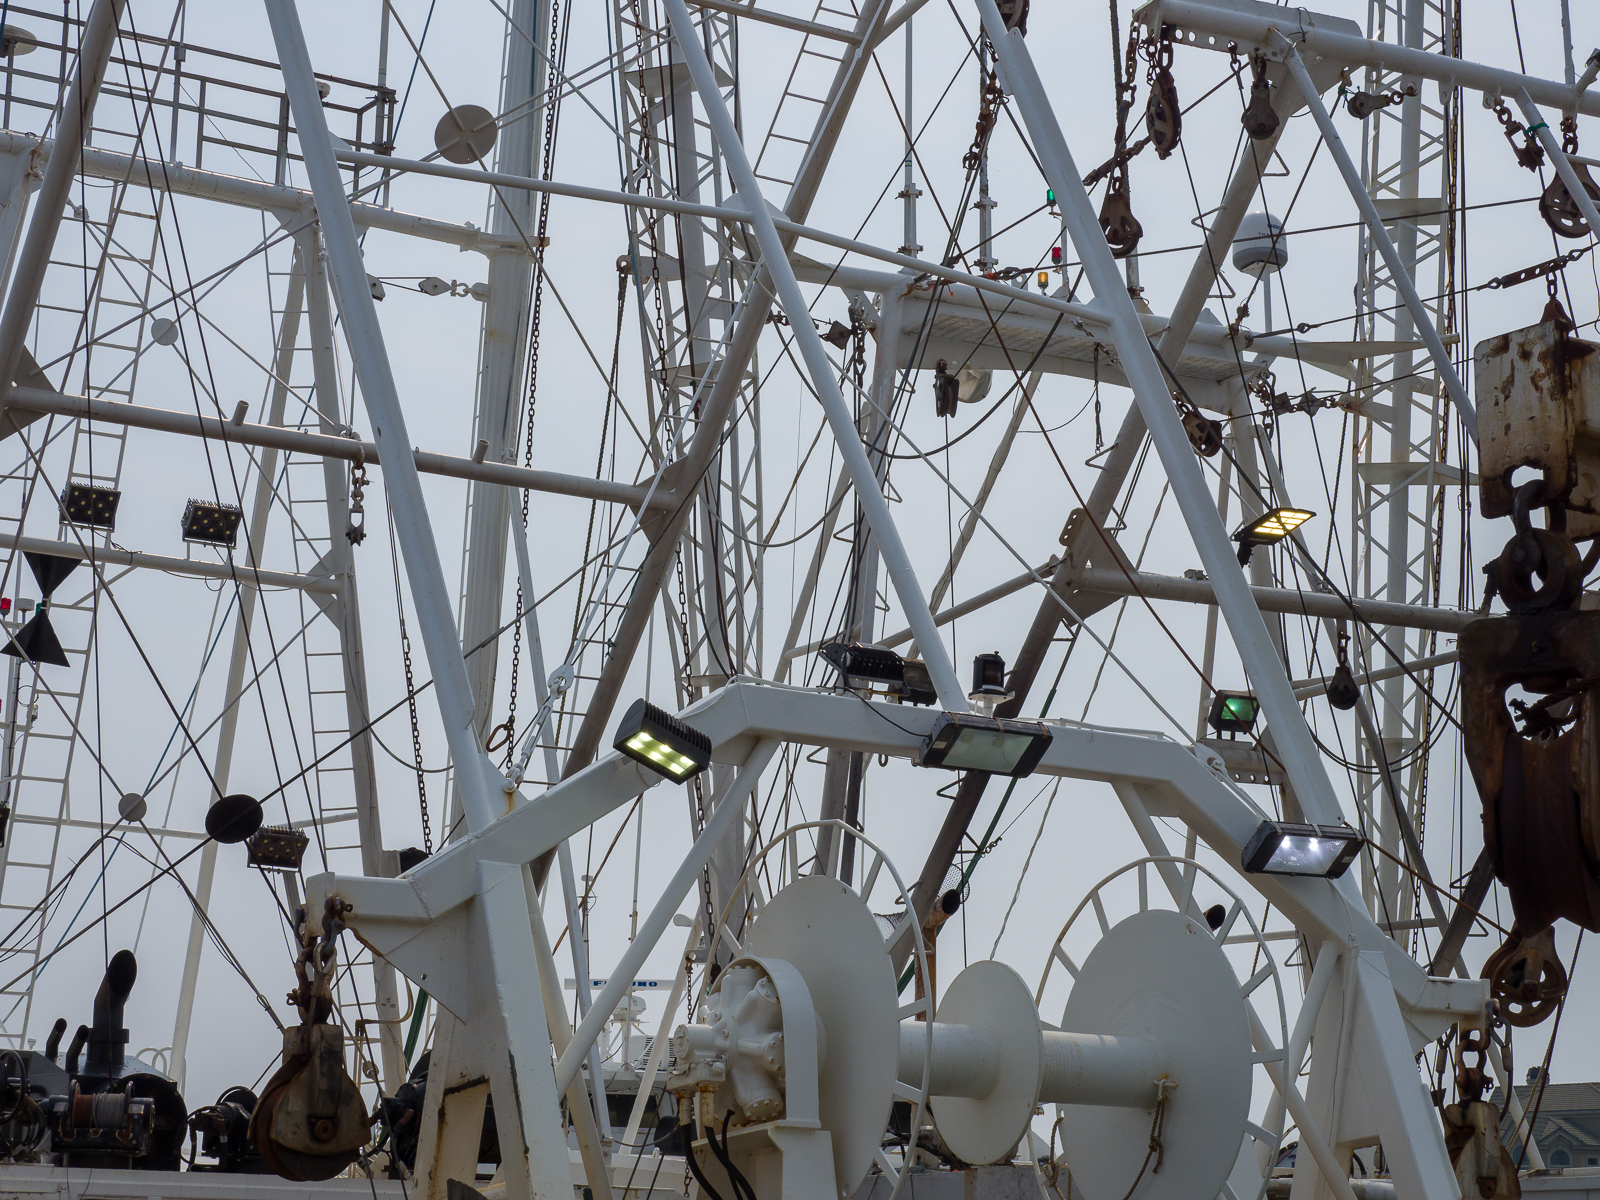 Masts and guide wires photos